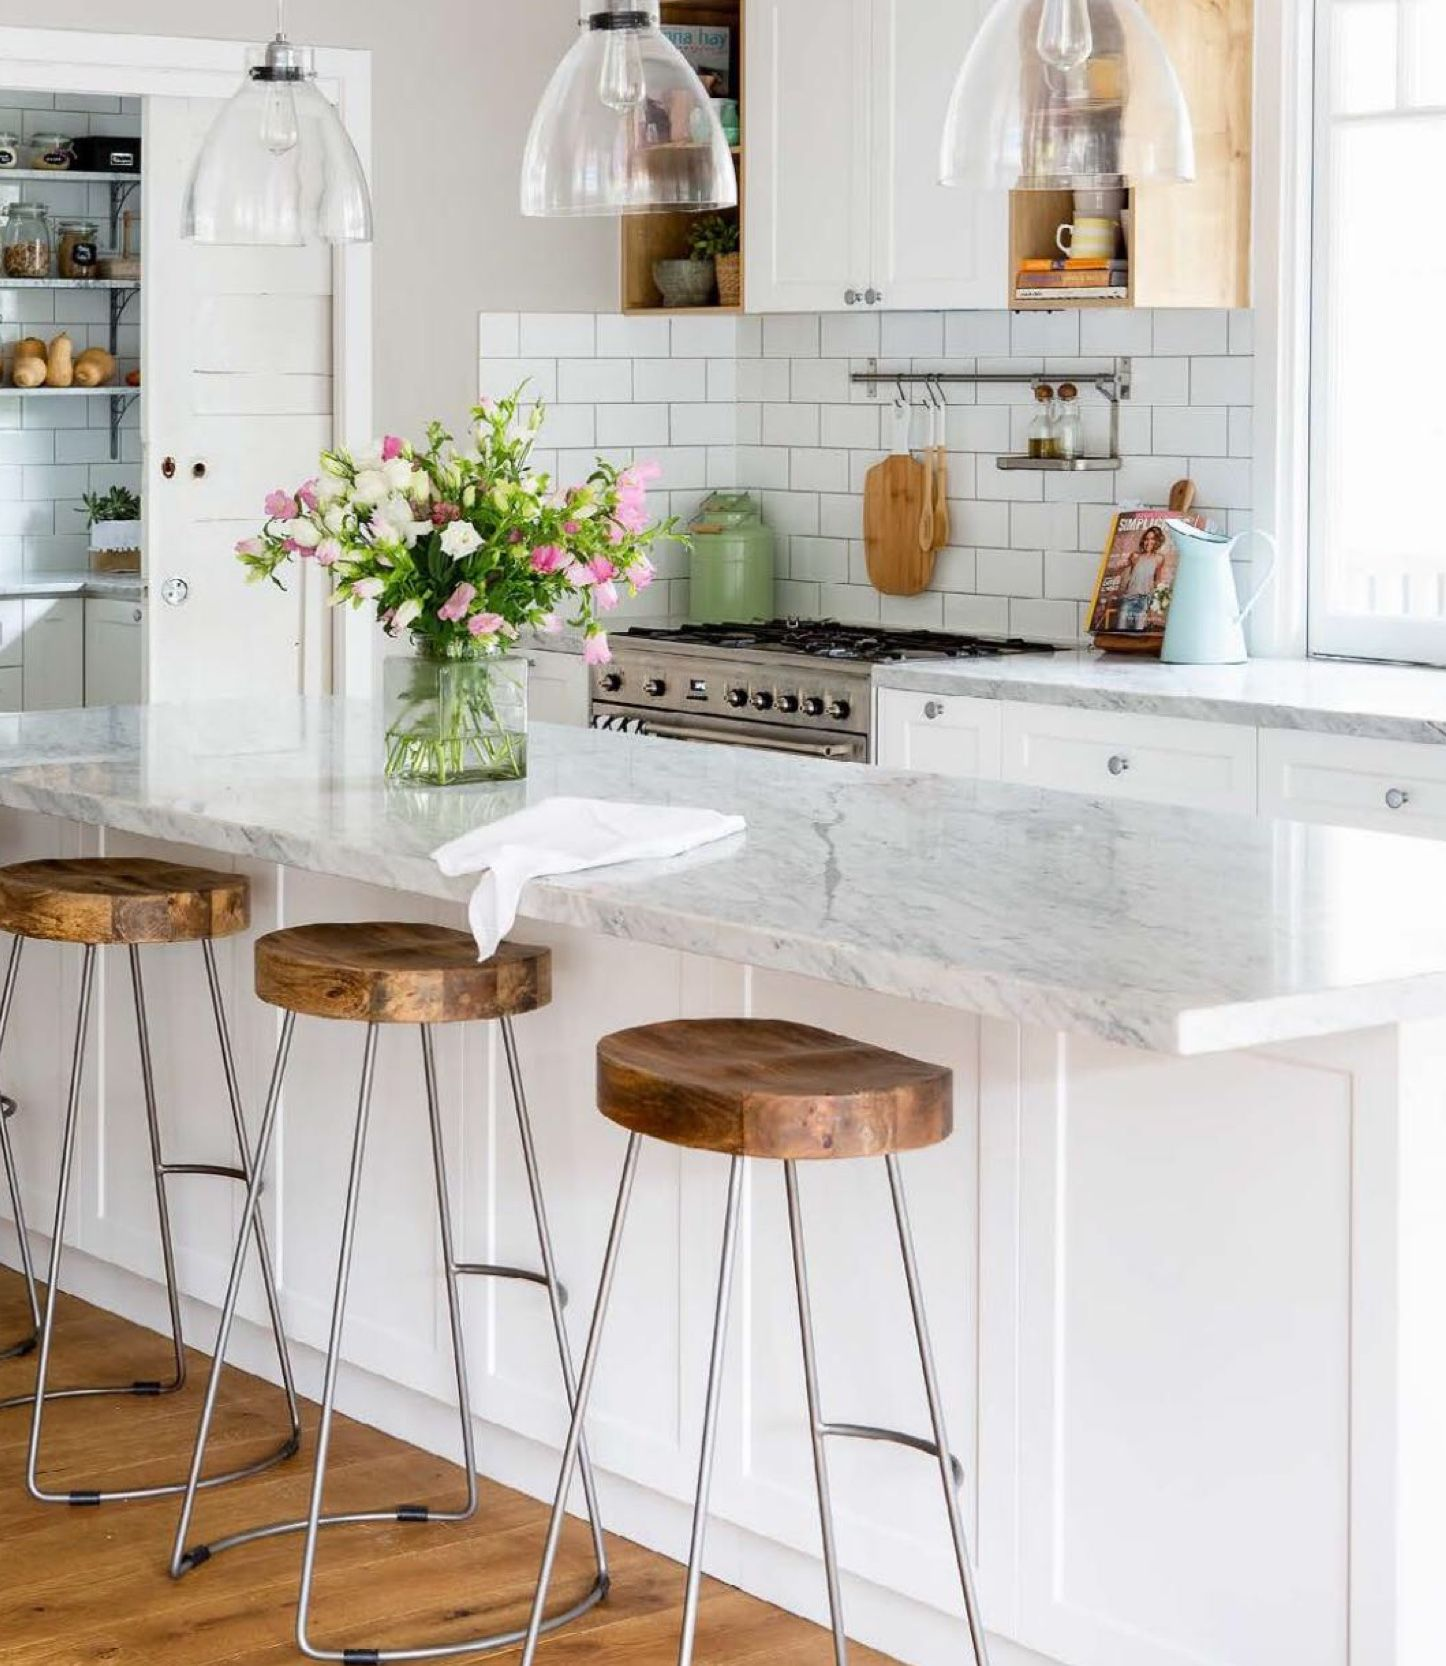 Stools for kitchen island by Heather on kitchen White